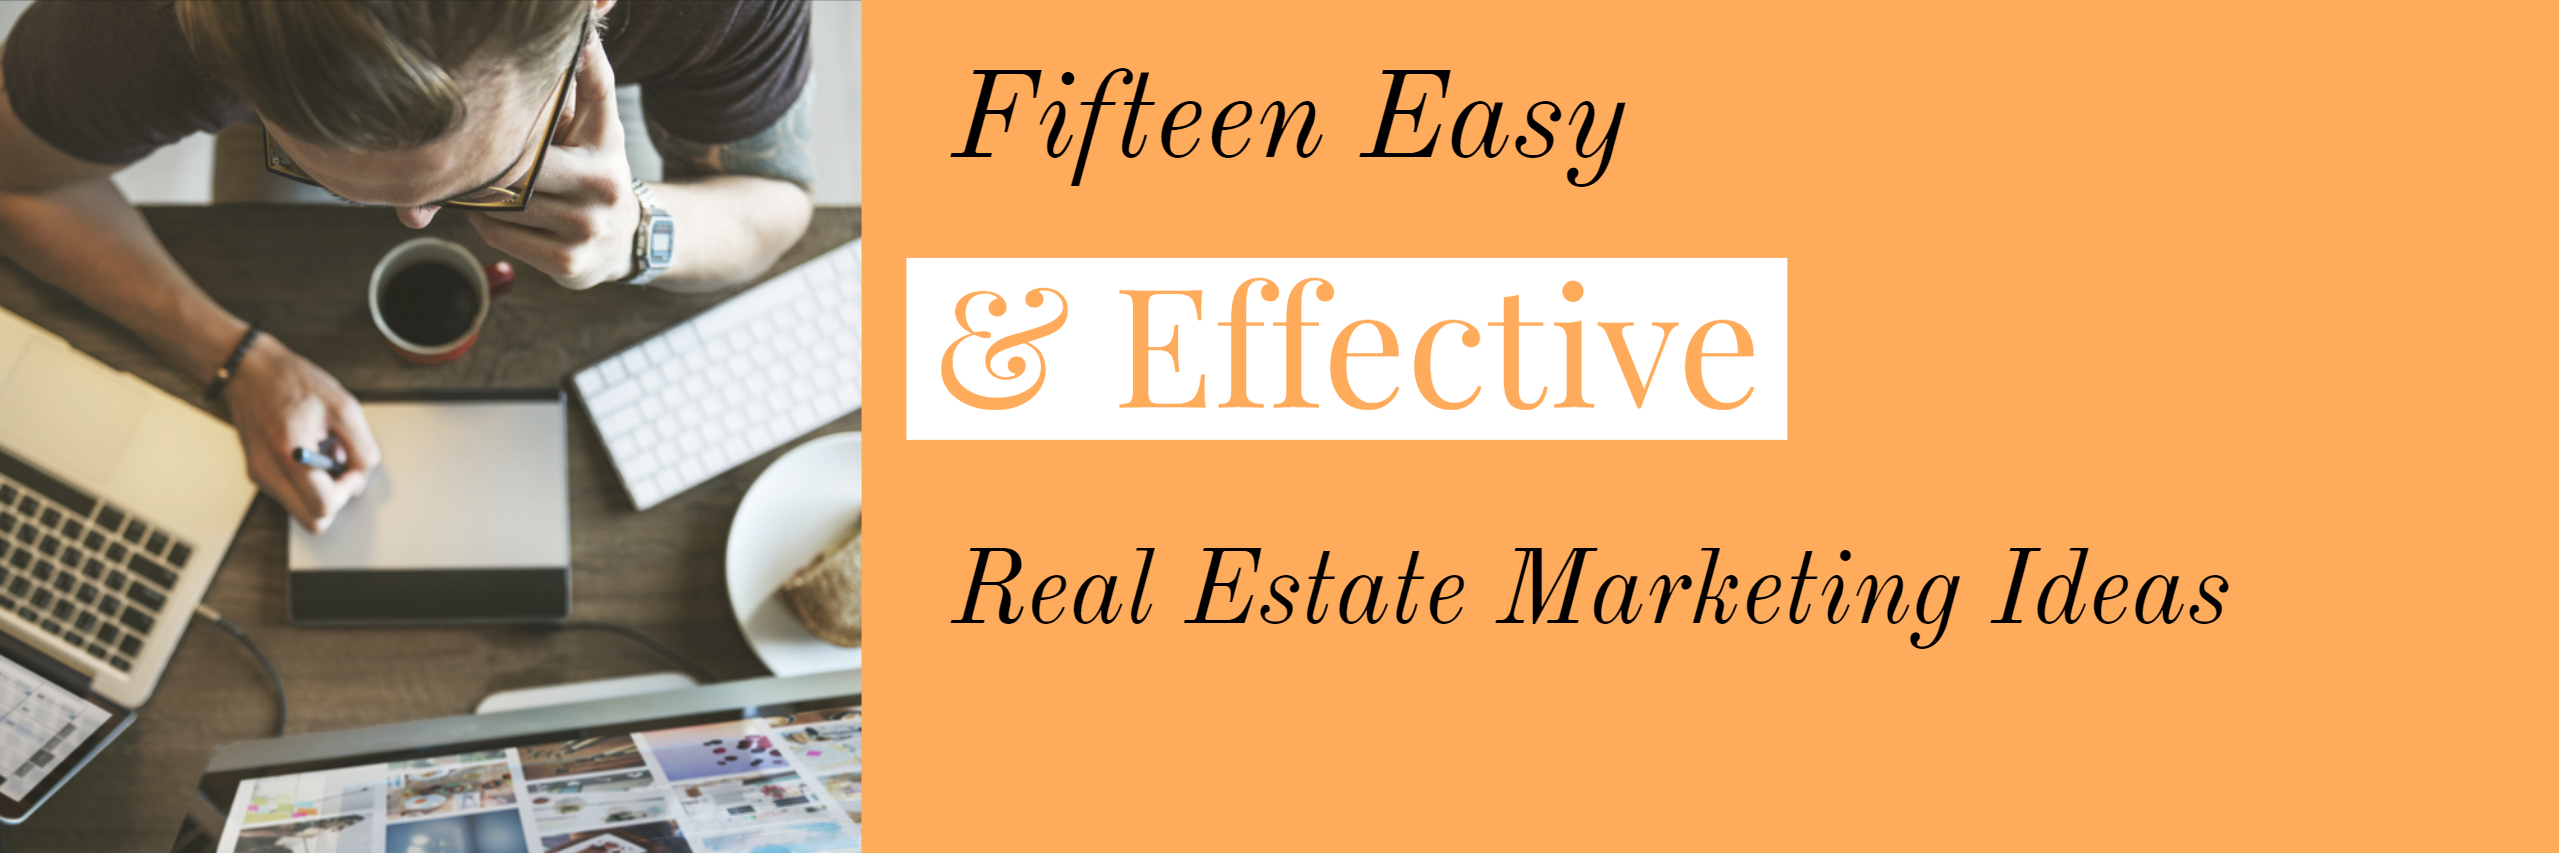 Fifteen Easy & Effective Real Estate Marketing Ideas